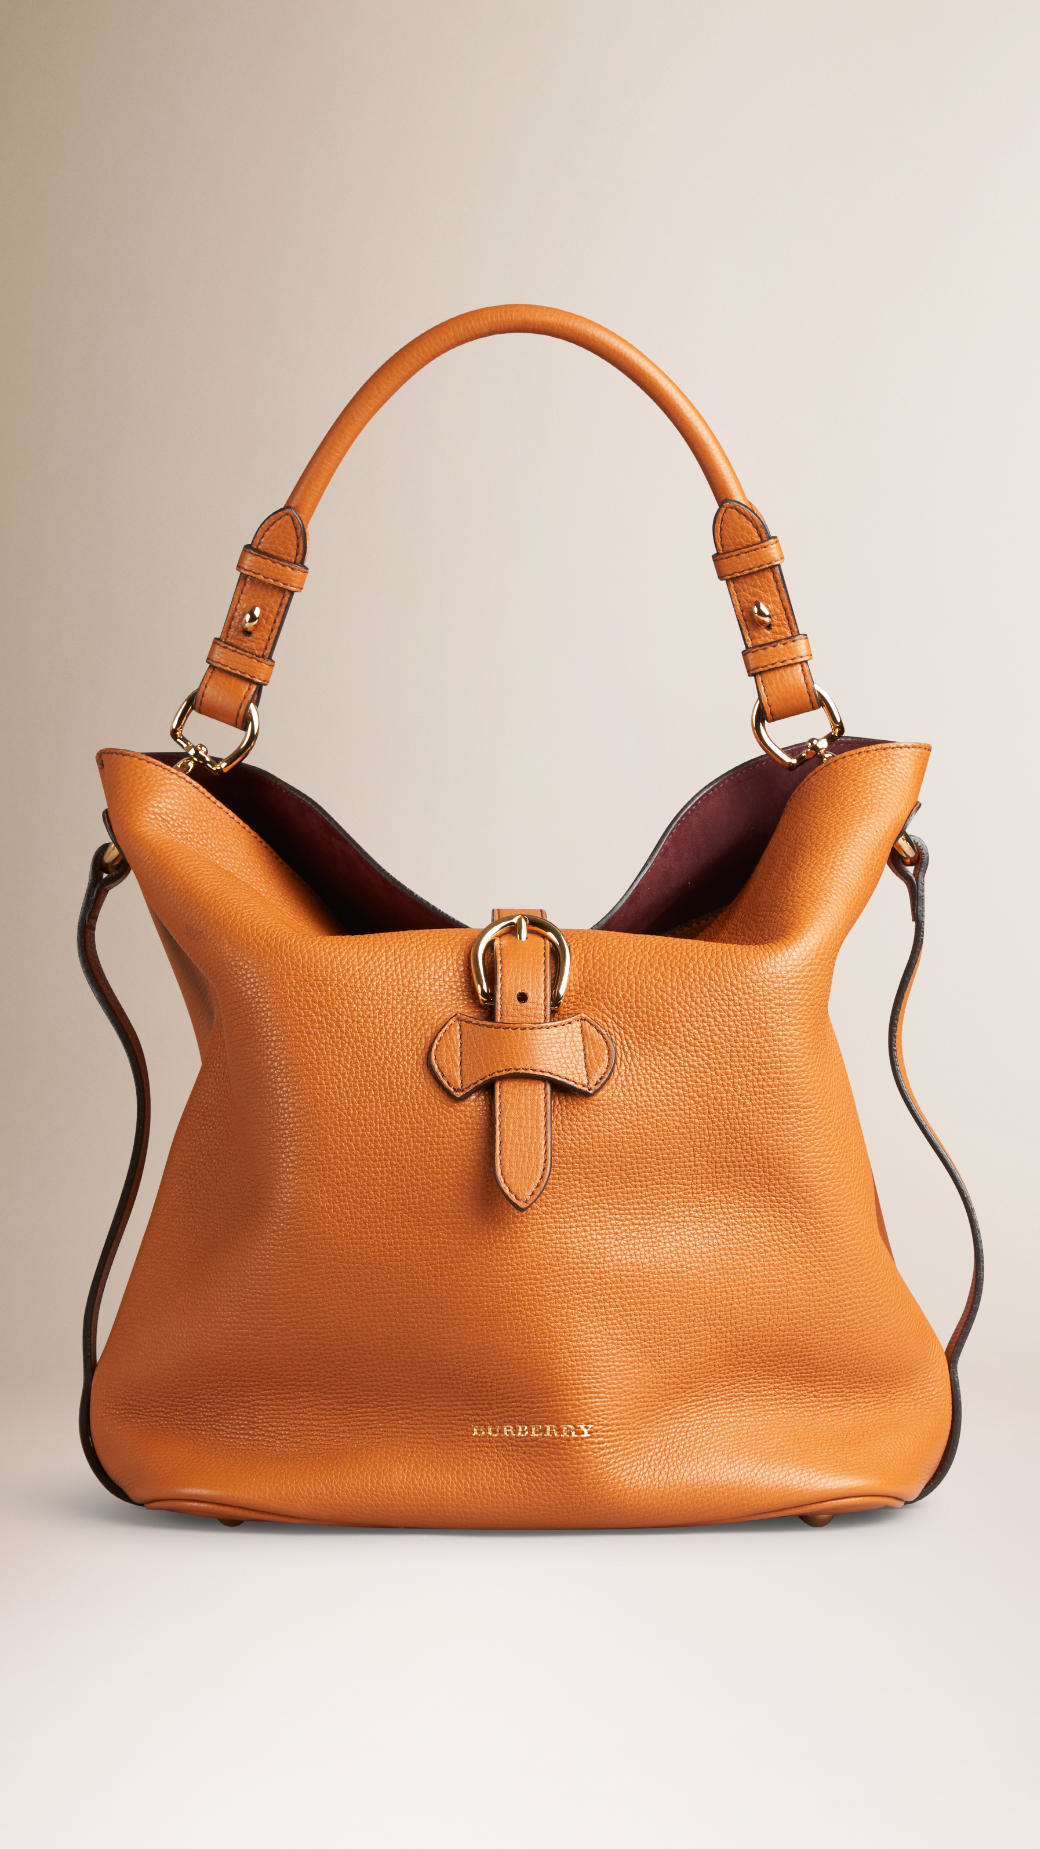 c580f24e881a Lyst - Burberry Medium Buckle Detail Leather Hobo Bag in Brown